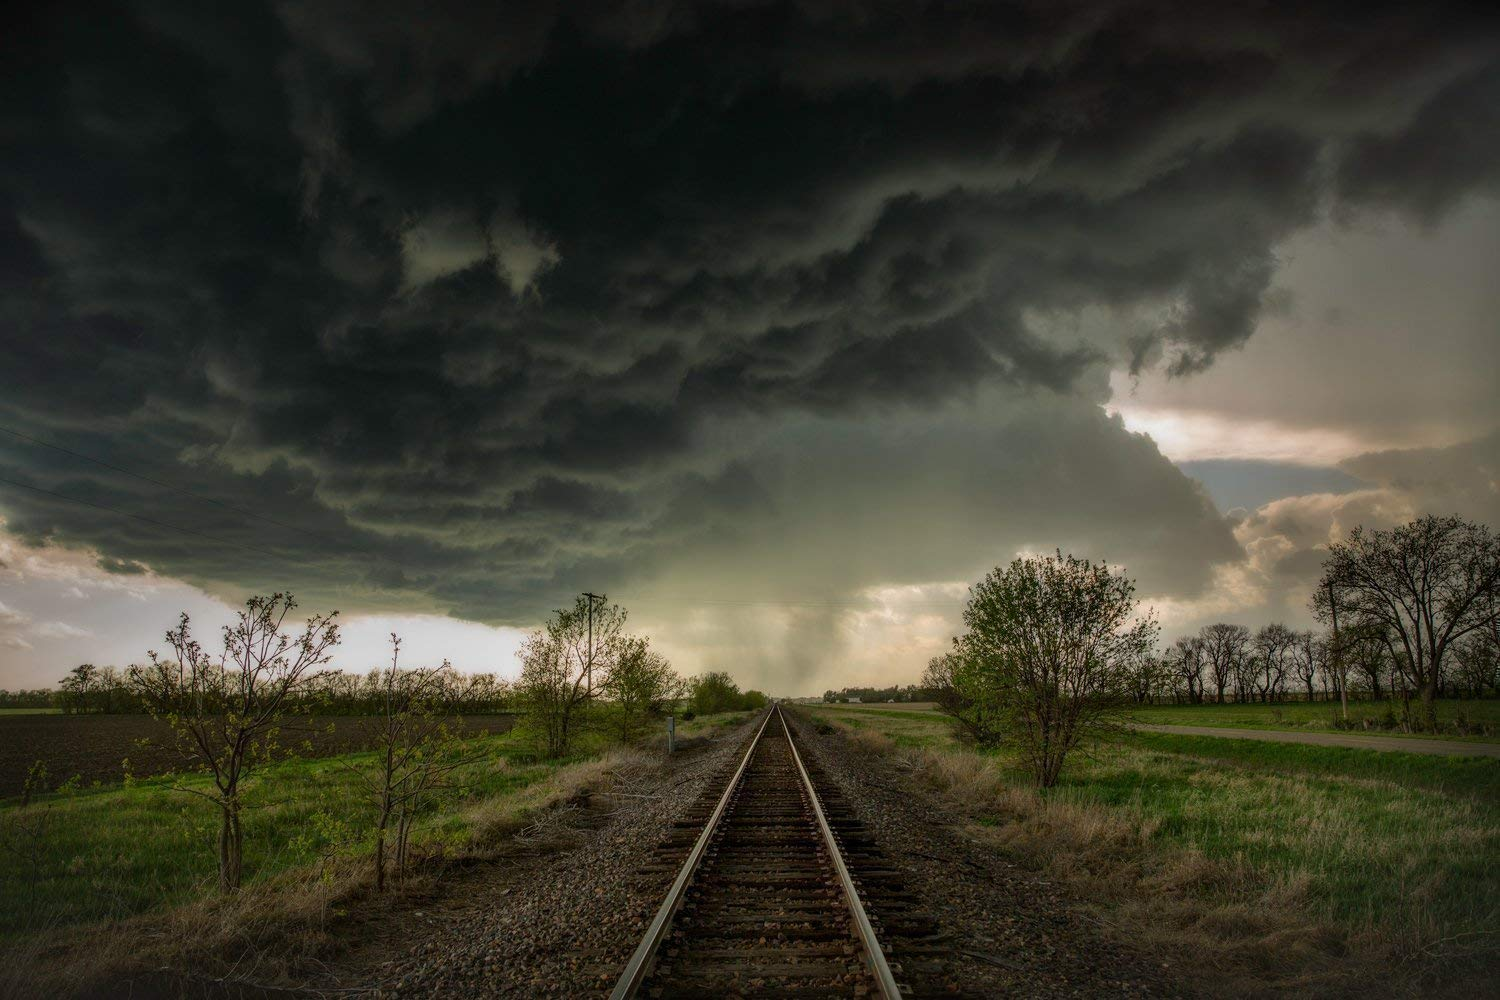 Train Track Photography Art Print - Picture of Tracks Leading Into Storm Clouds in Kansas Fine Art Decor Artwork for Home Decoration 5x7 to 30x45